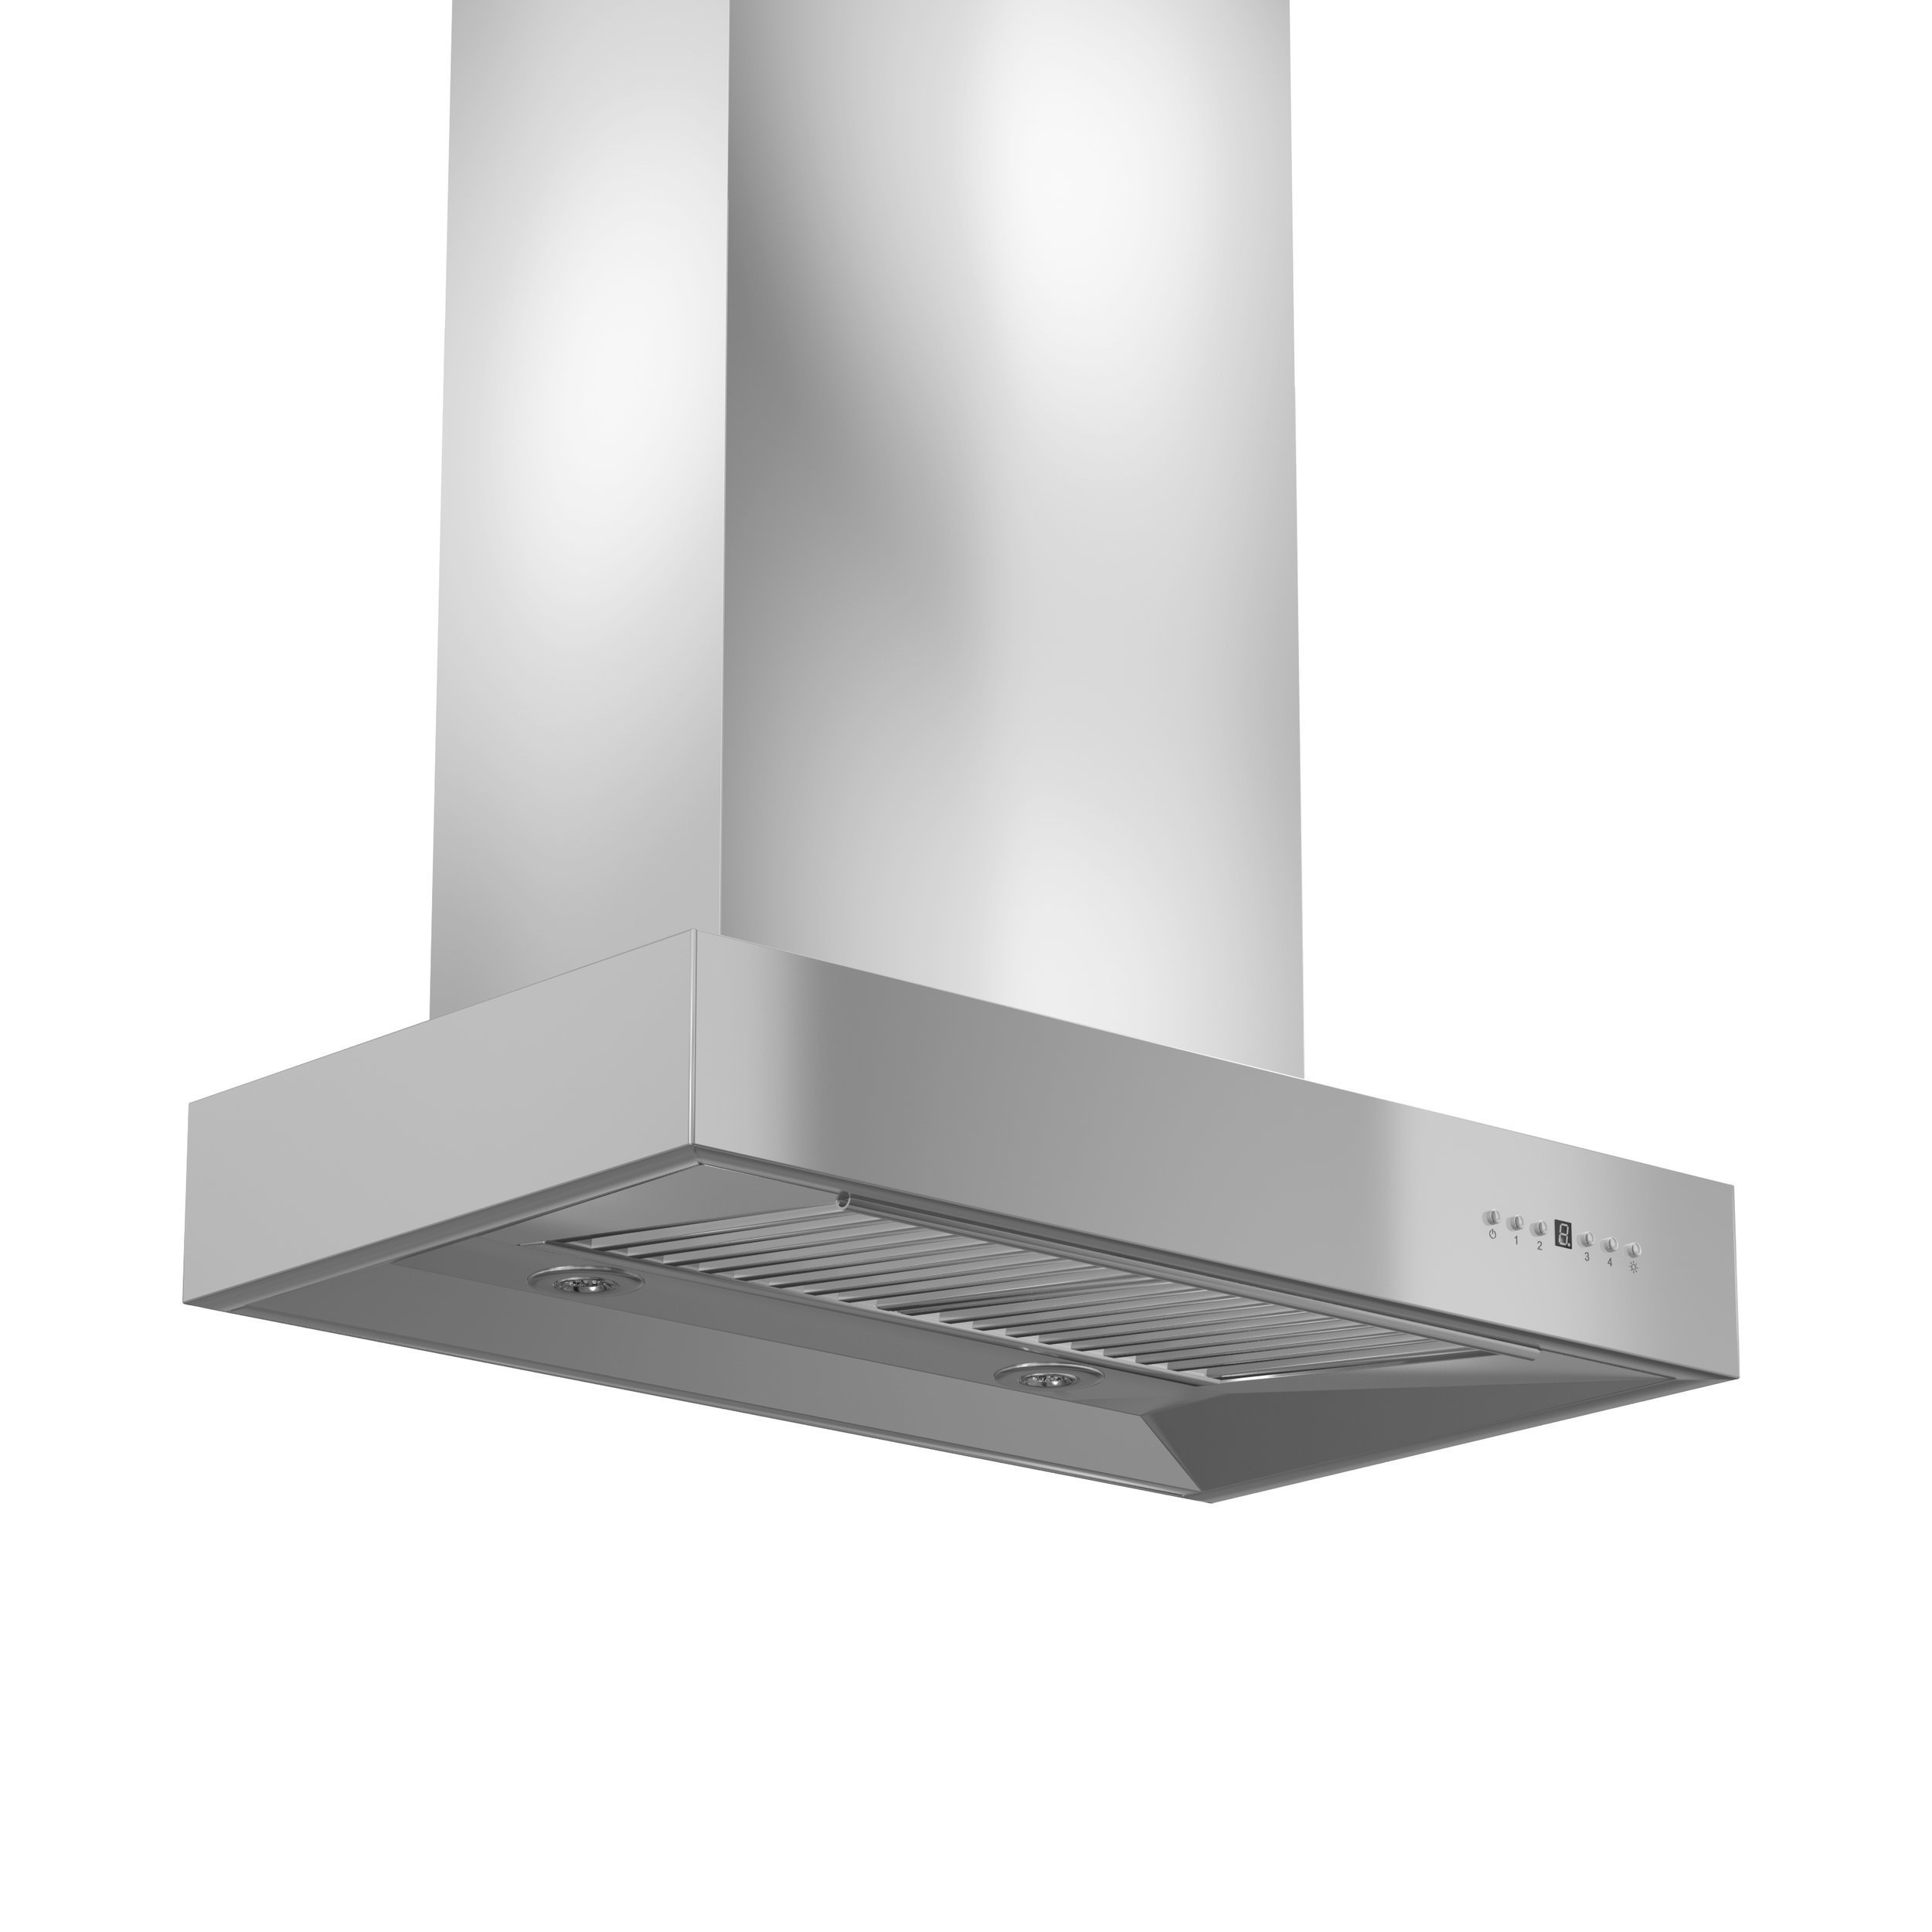 zline-stainless-steel-wall-mounted-range-hood-KECOM-side-under.jpg